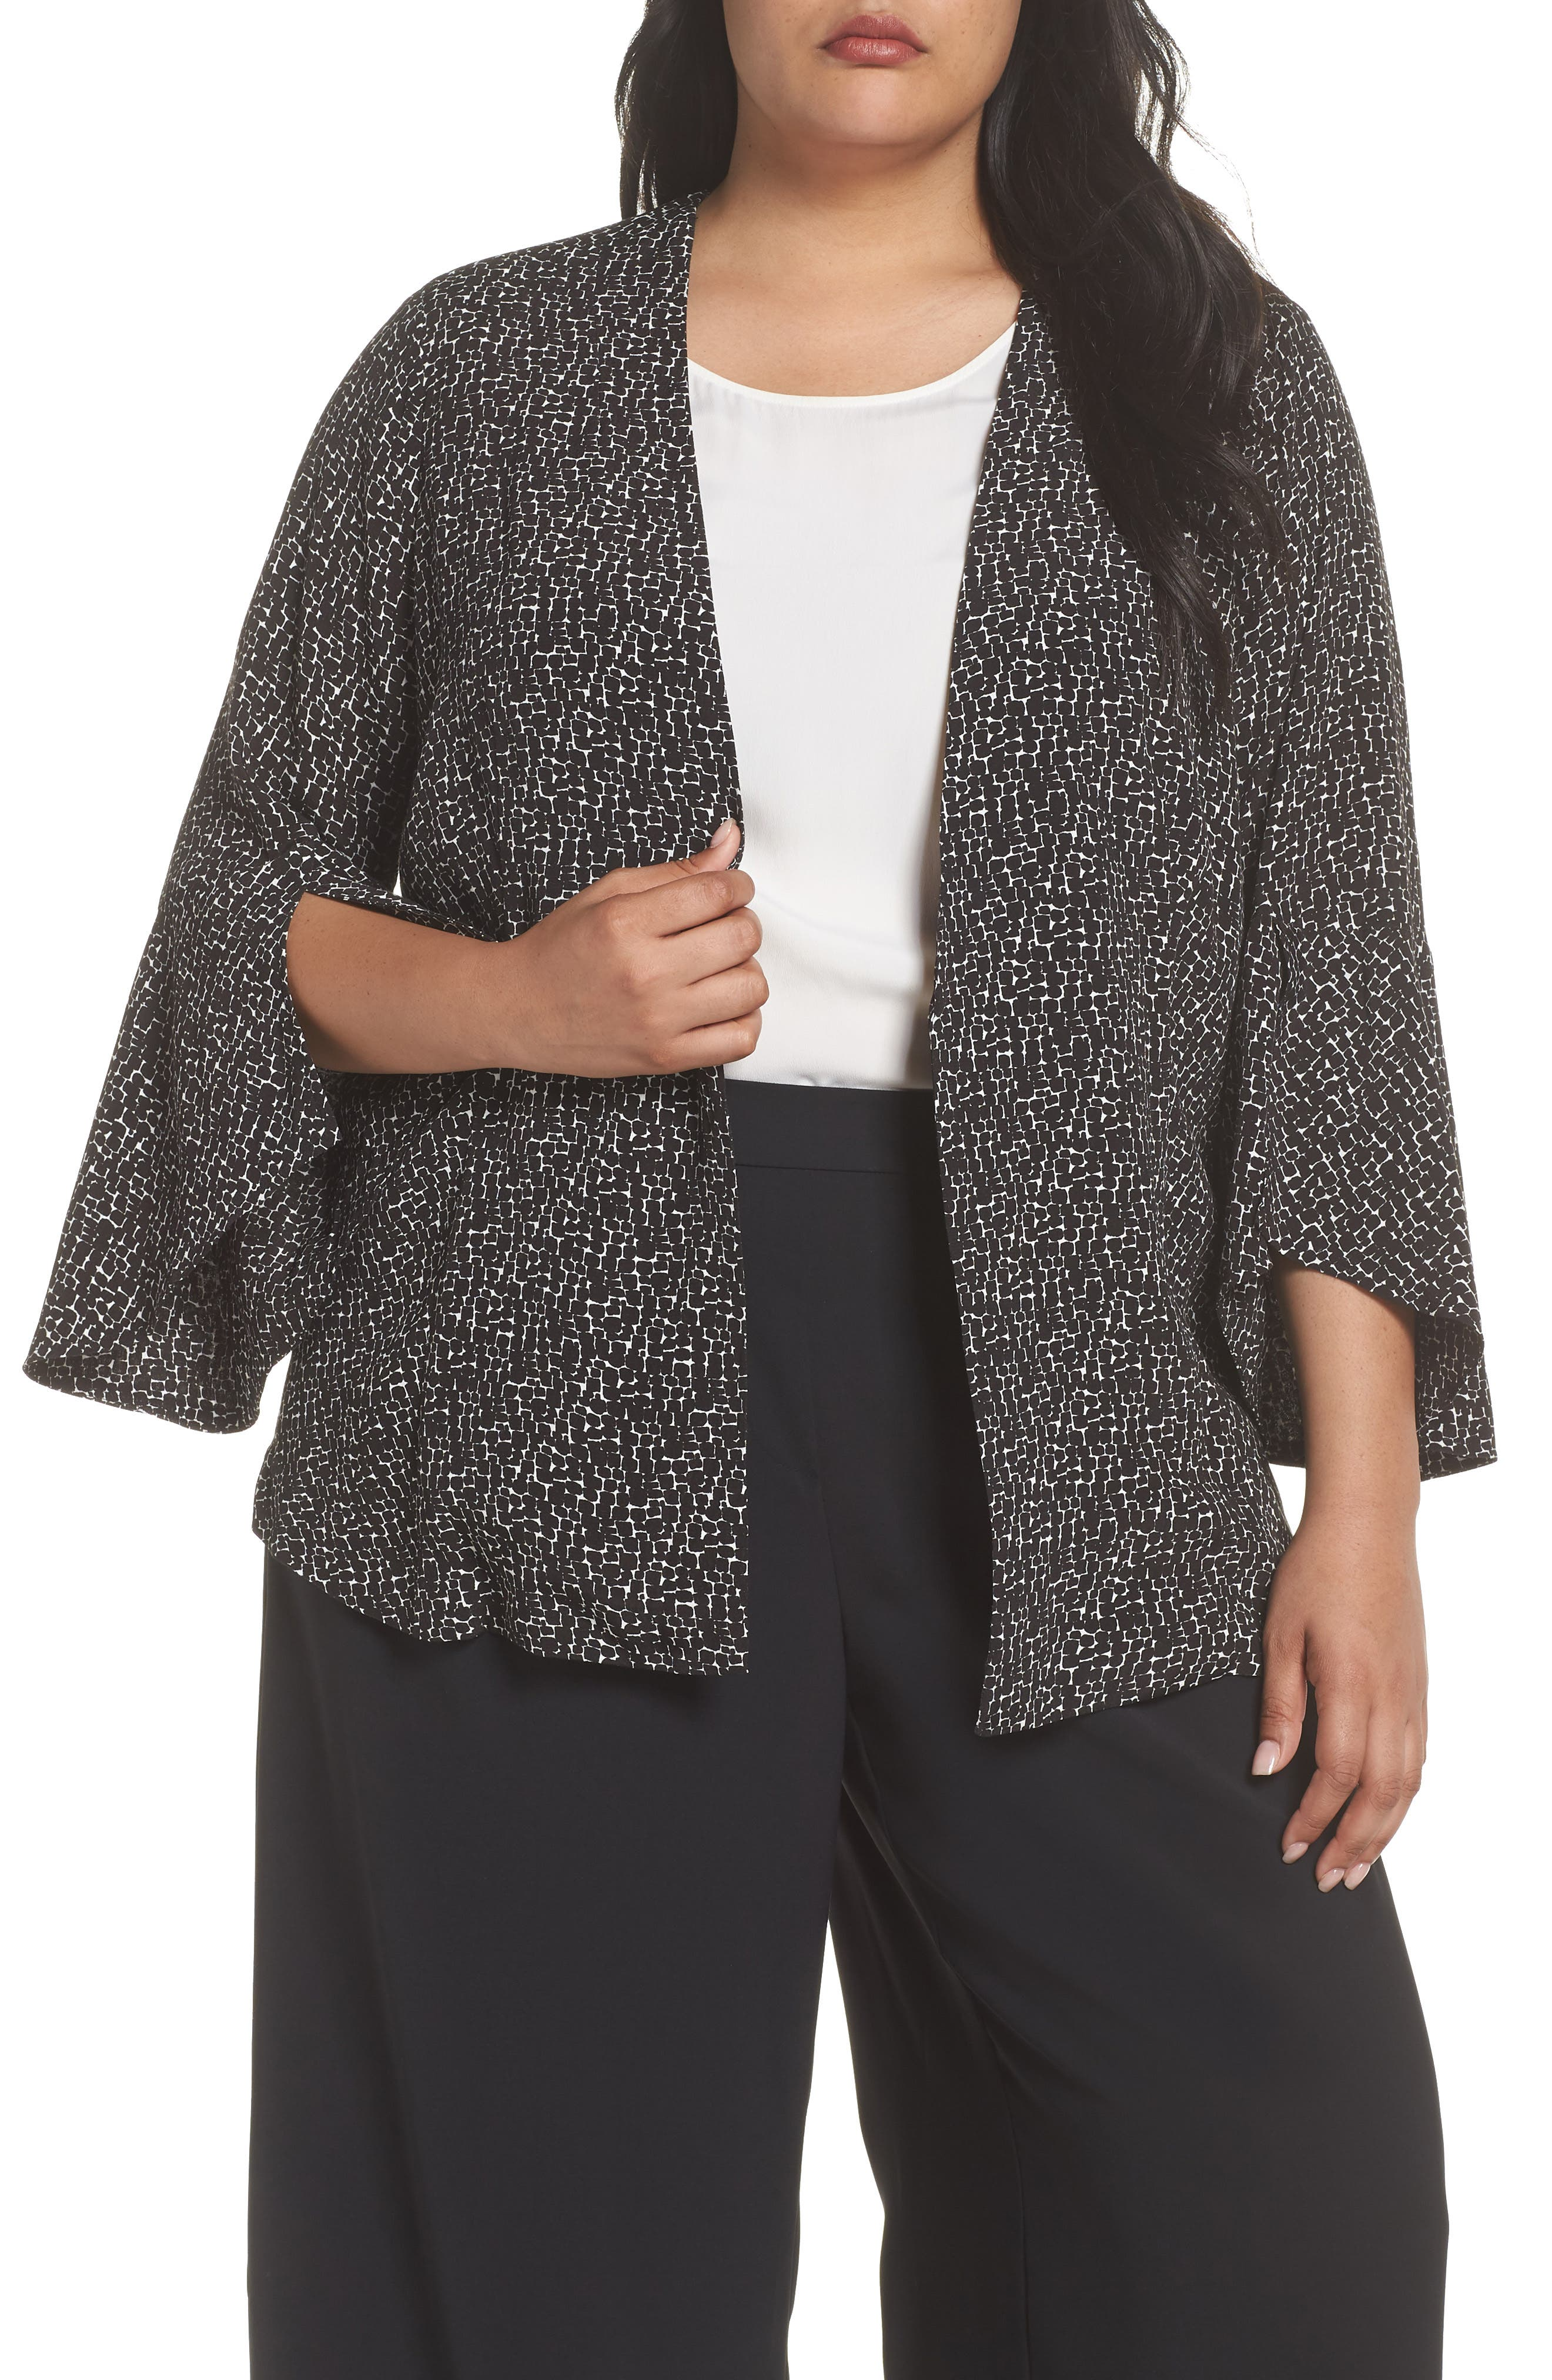 Ruffle Sleeve Soft Crepe Jacket,                             Main thumbnail 1, color,                             BLACK-IVORY GIA PRINT